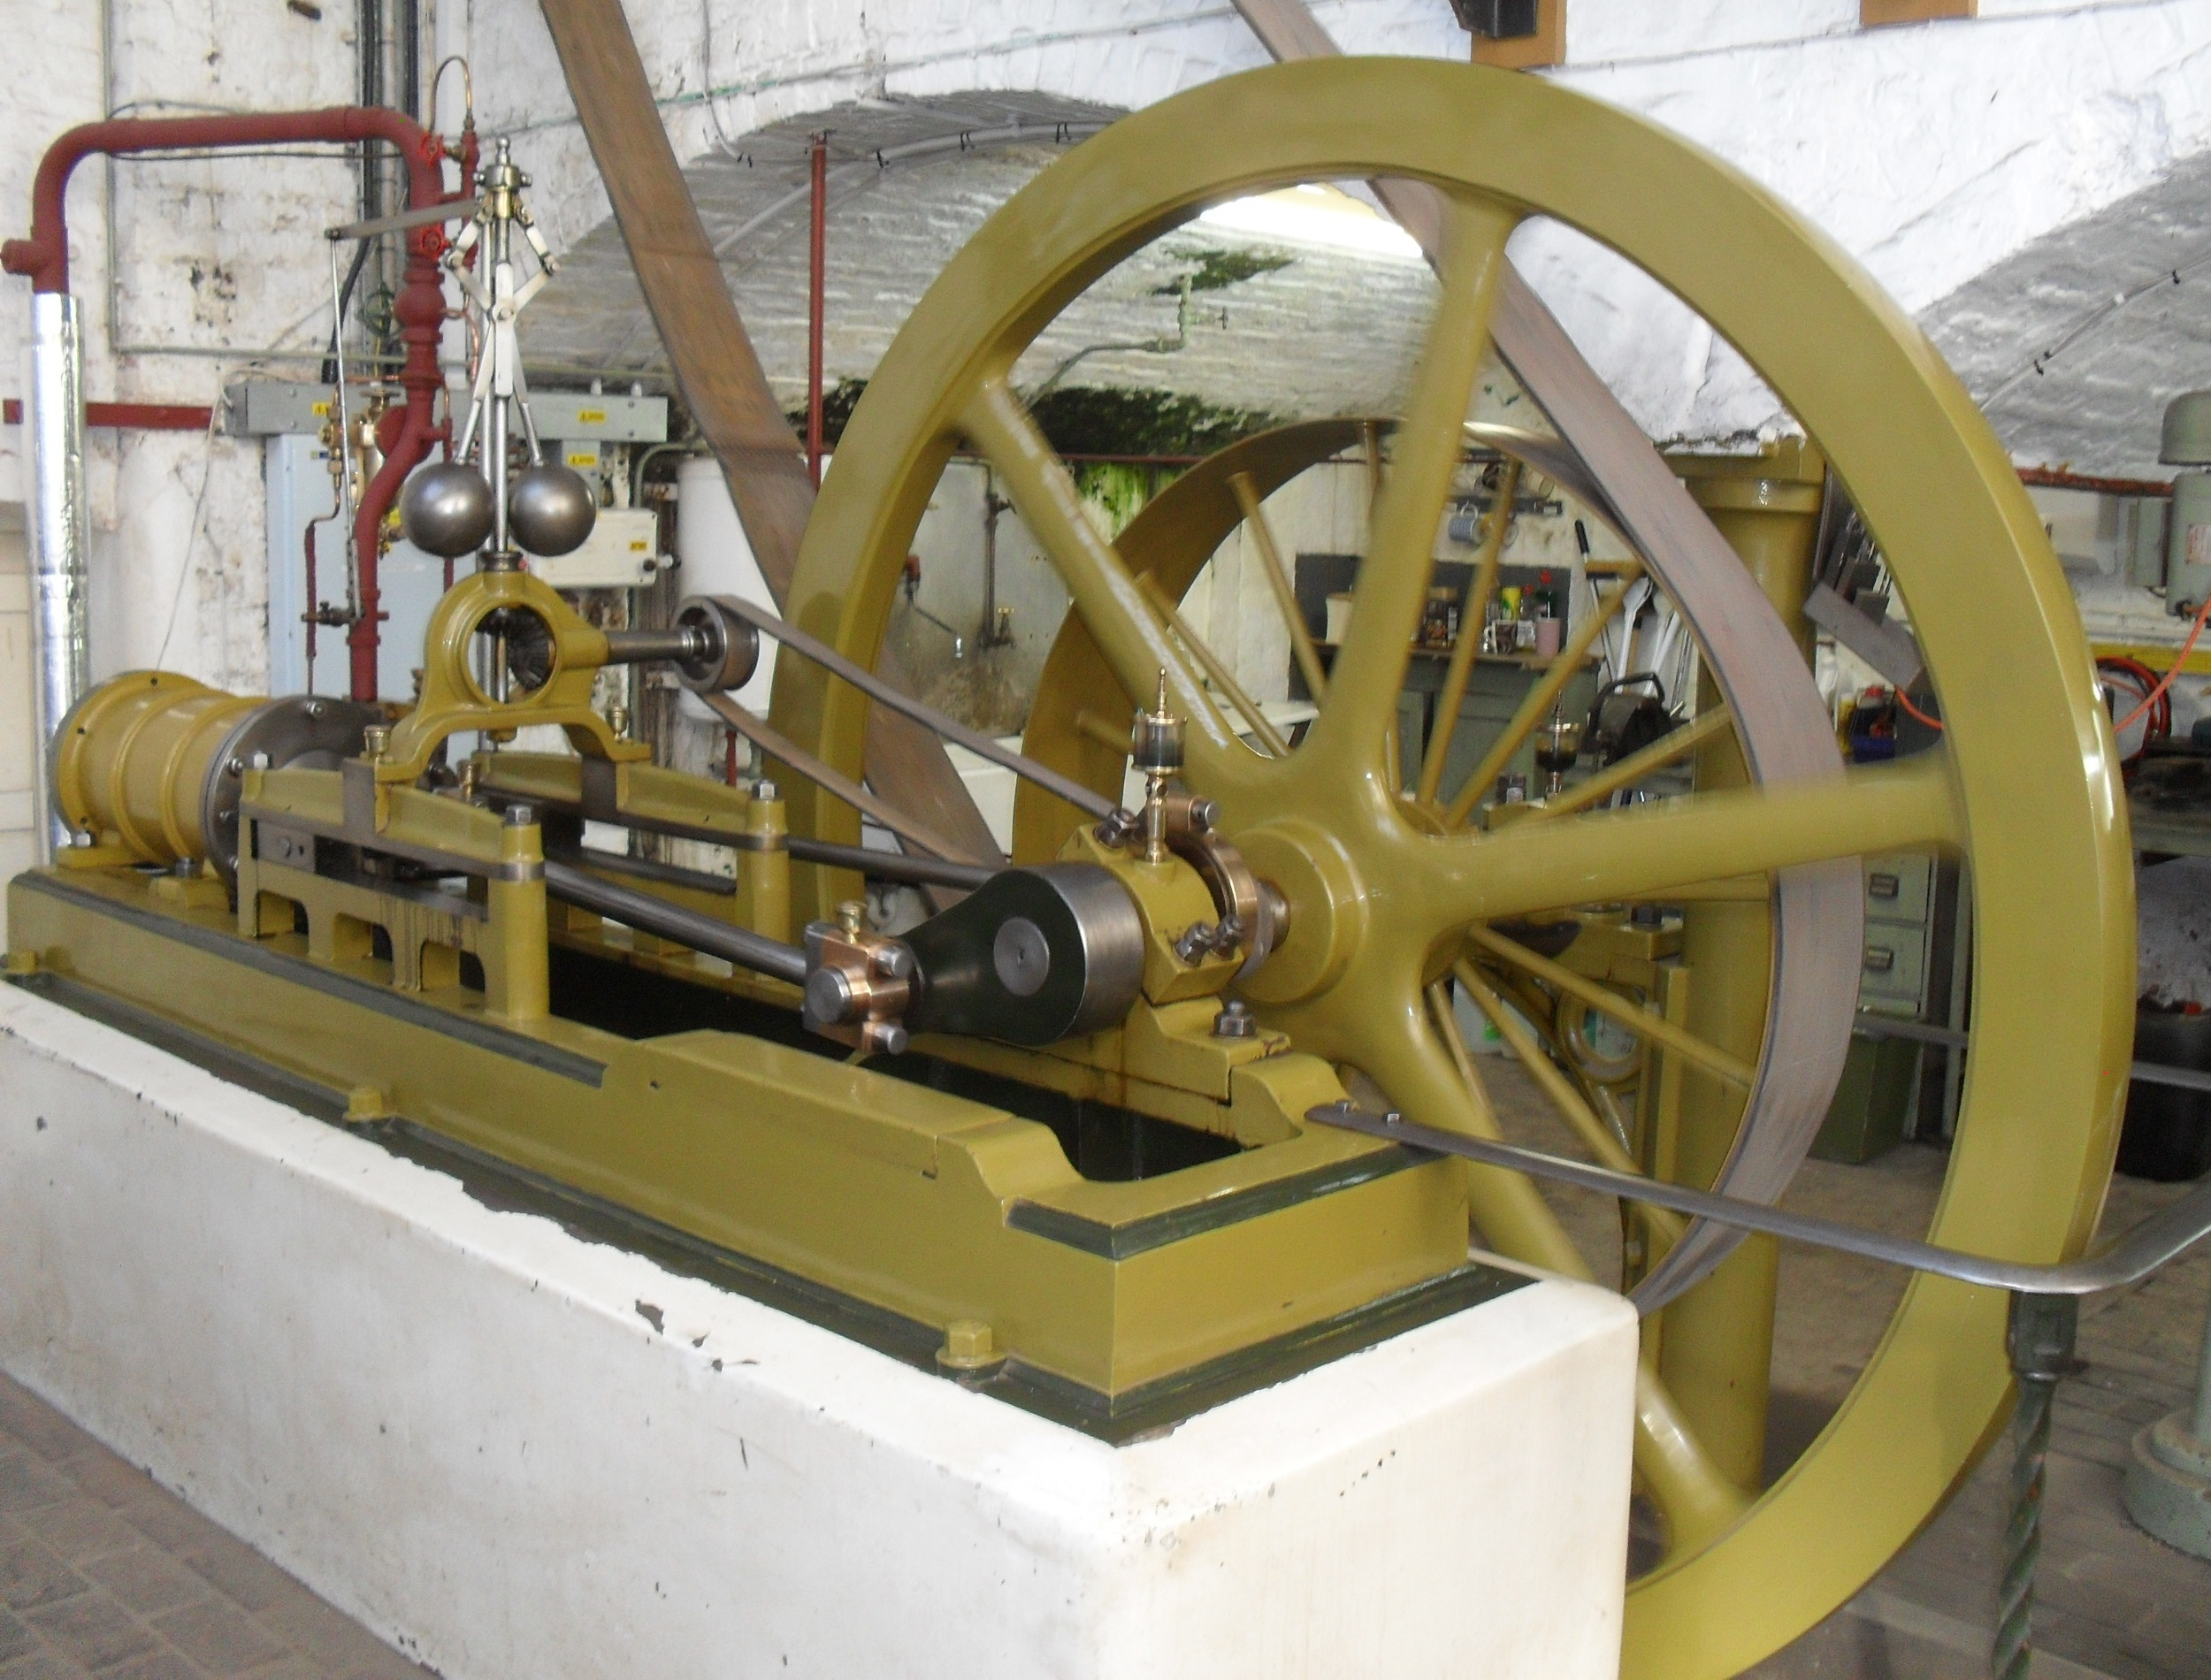 Bermuda s Aviation History and pioneers Free pictures of steam engines